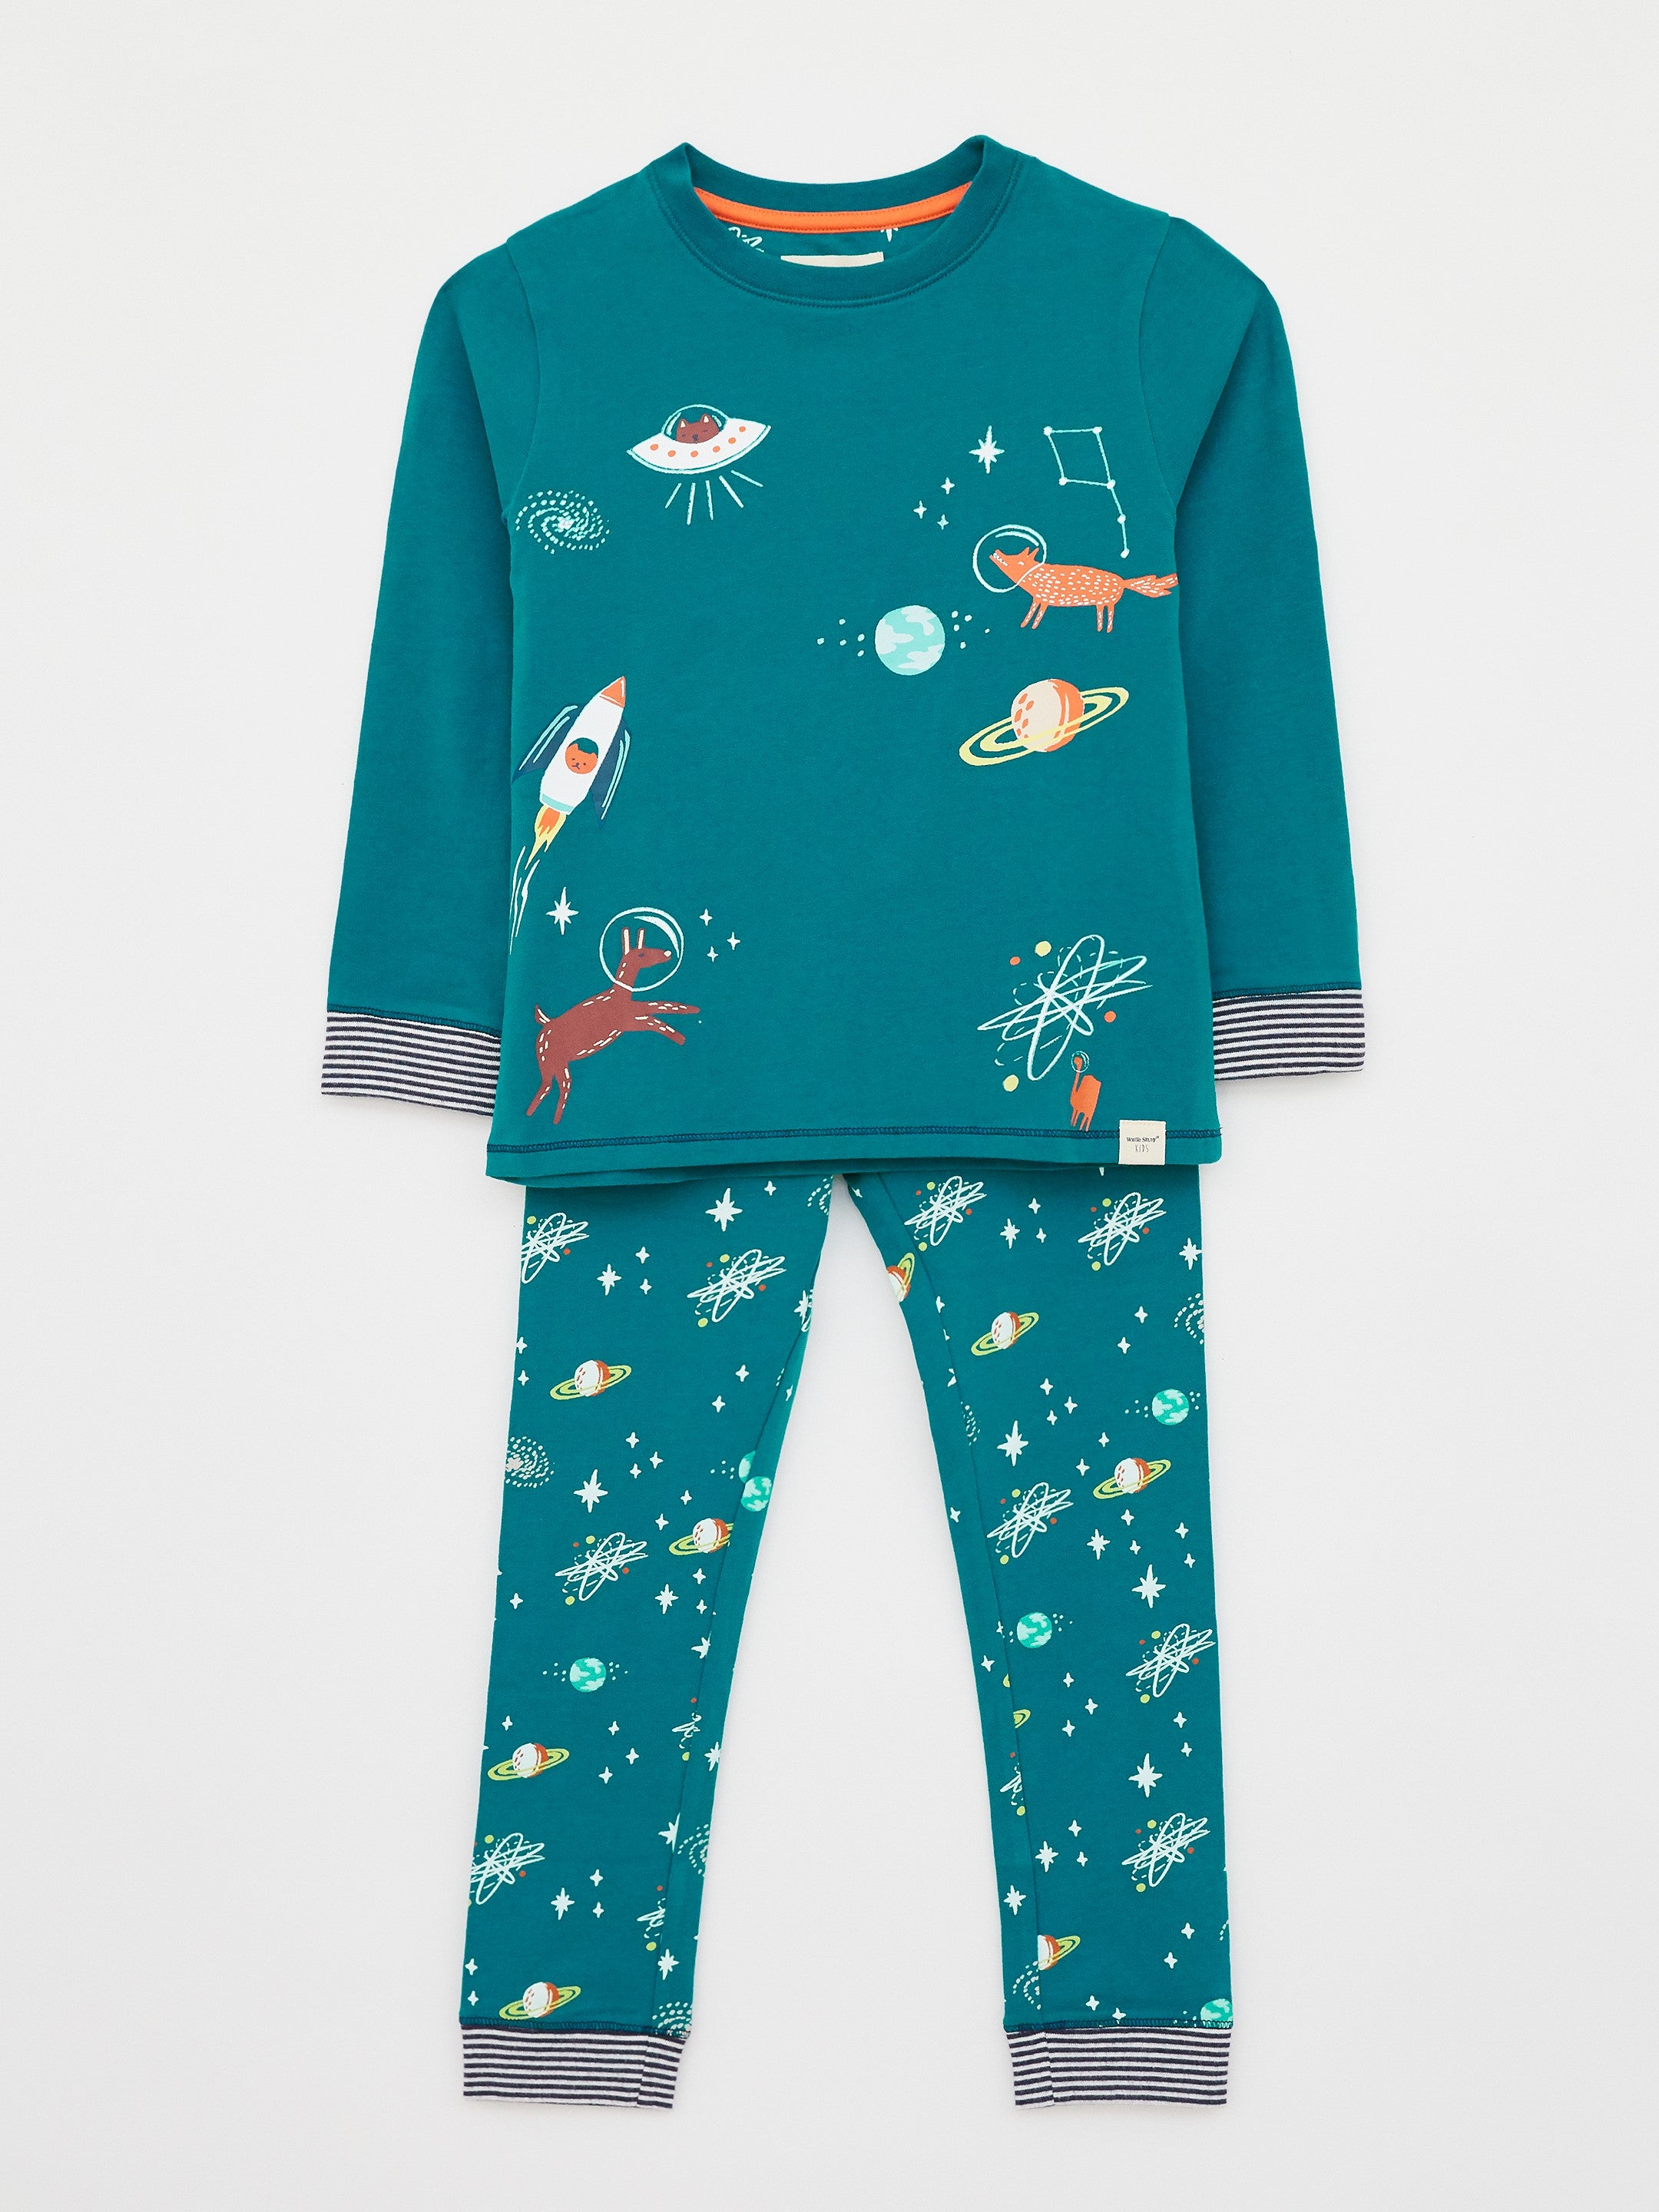 Find Me in Space Jersey PJ Set in Teal